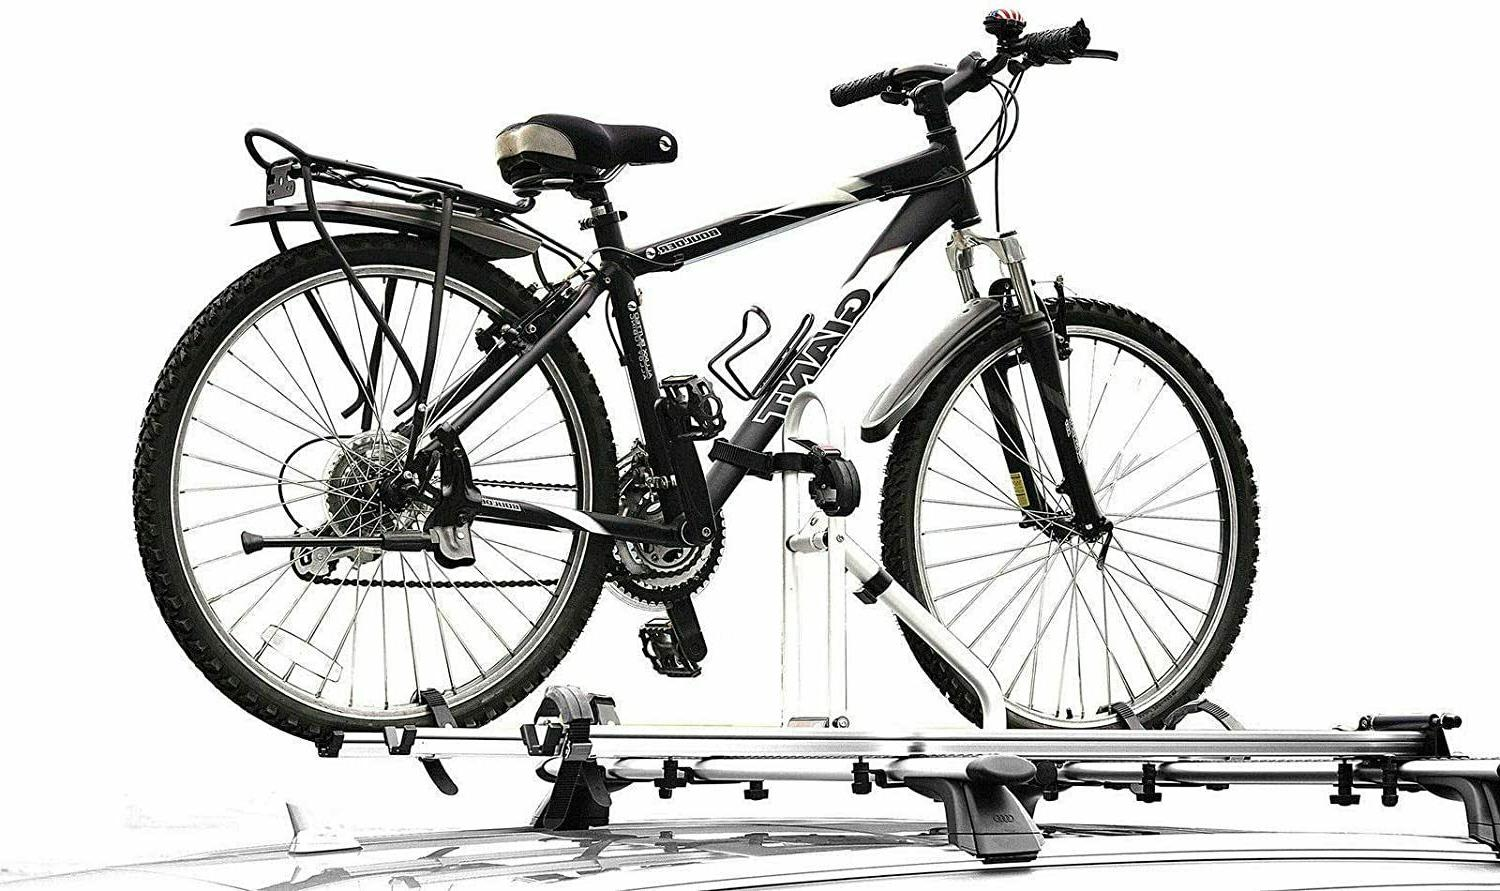 CyclingDeal Alloy Car Bike Carrier Load